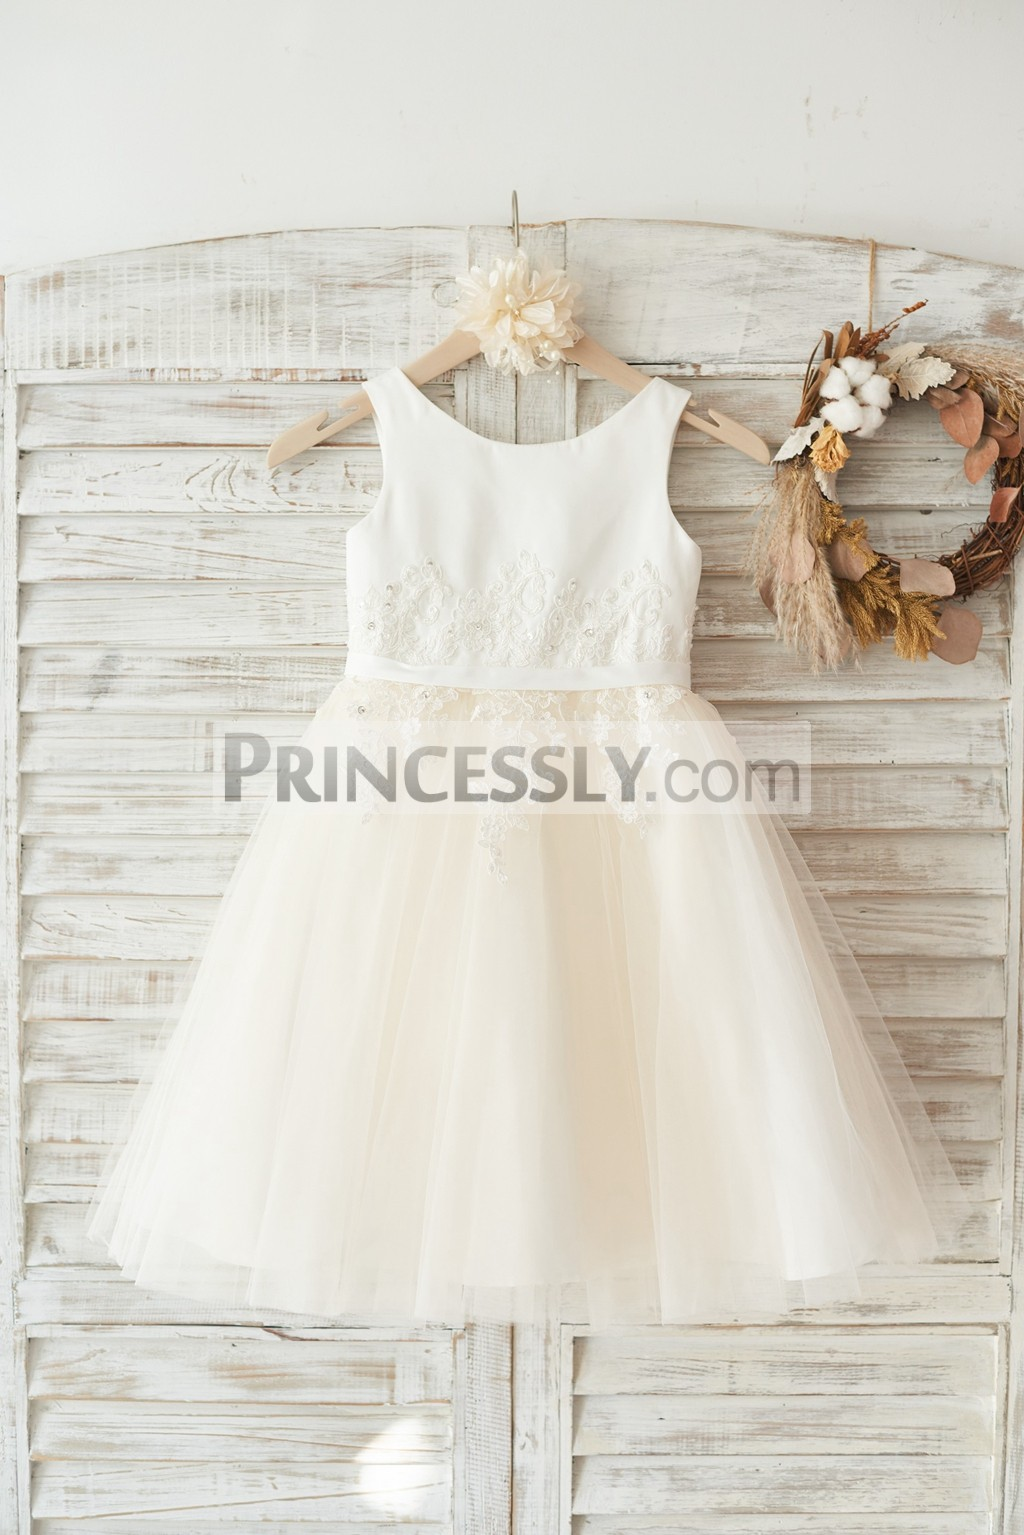 Ivory satin champagne tulle flower girl dress with beaded ivory lace appliques